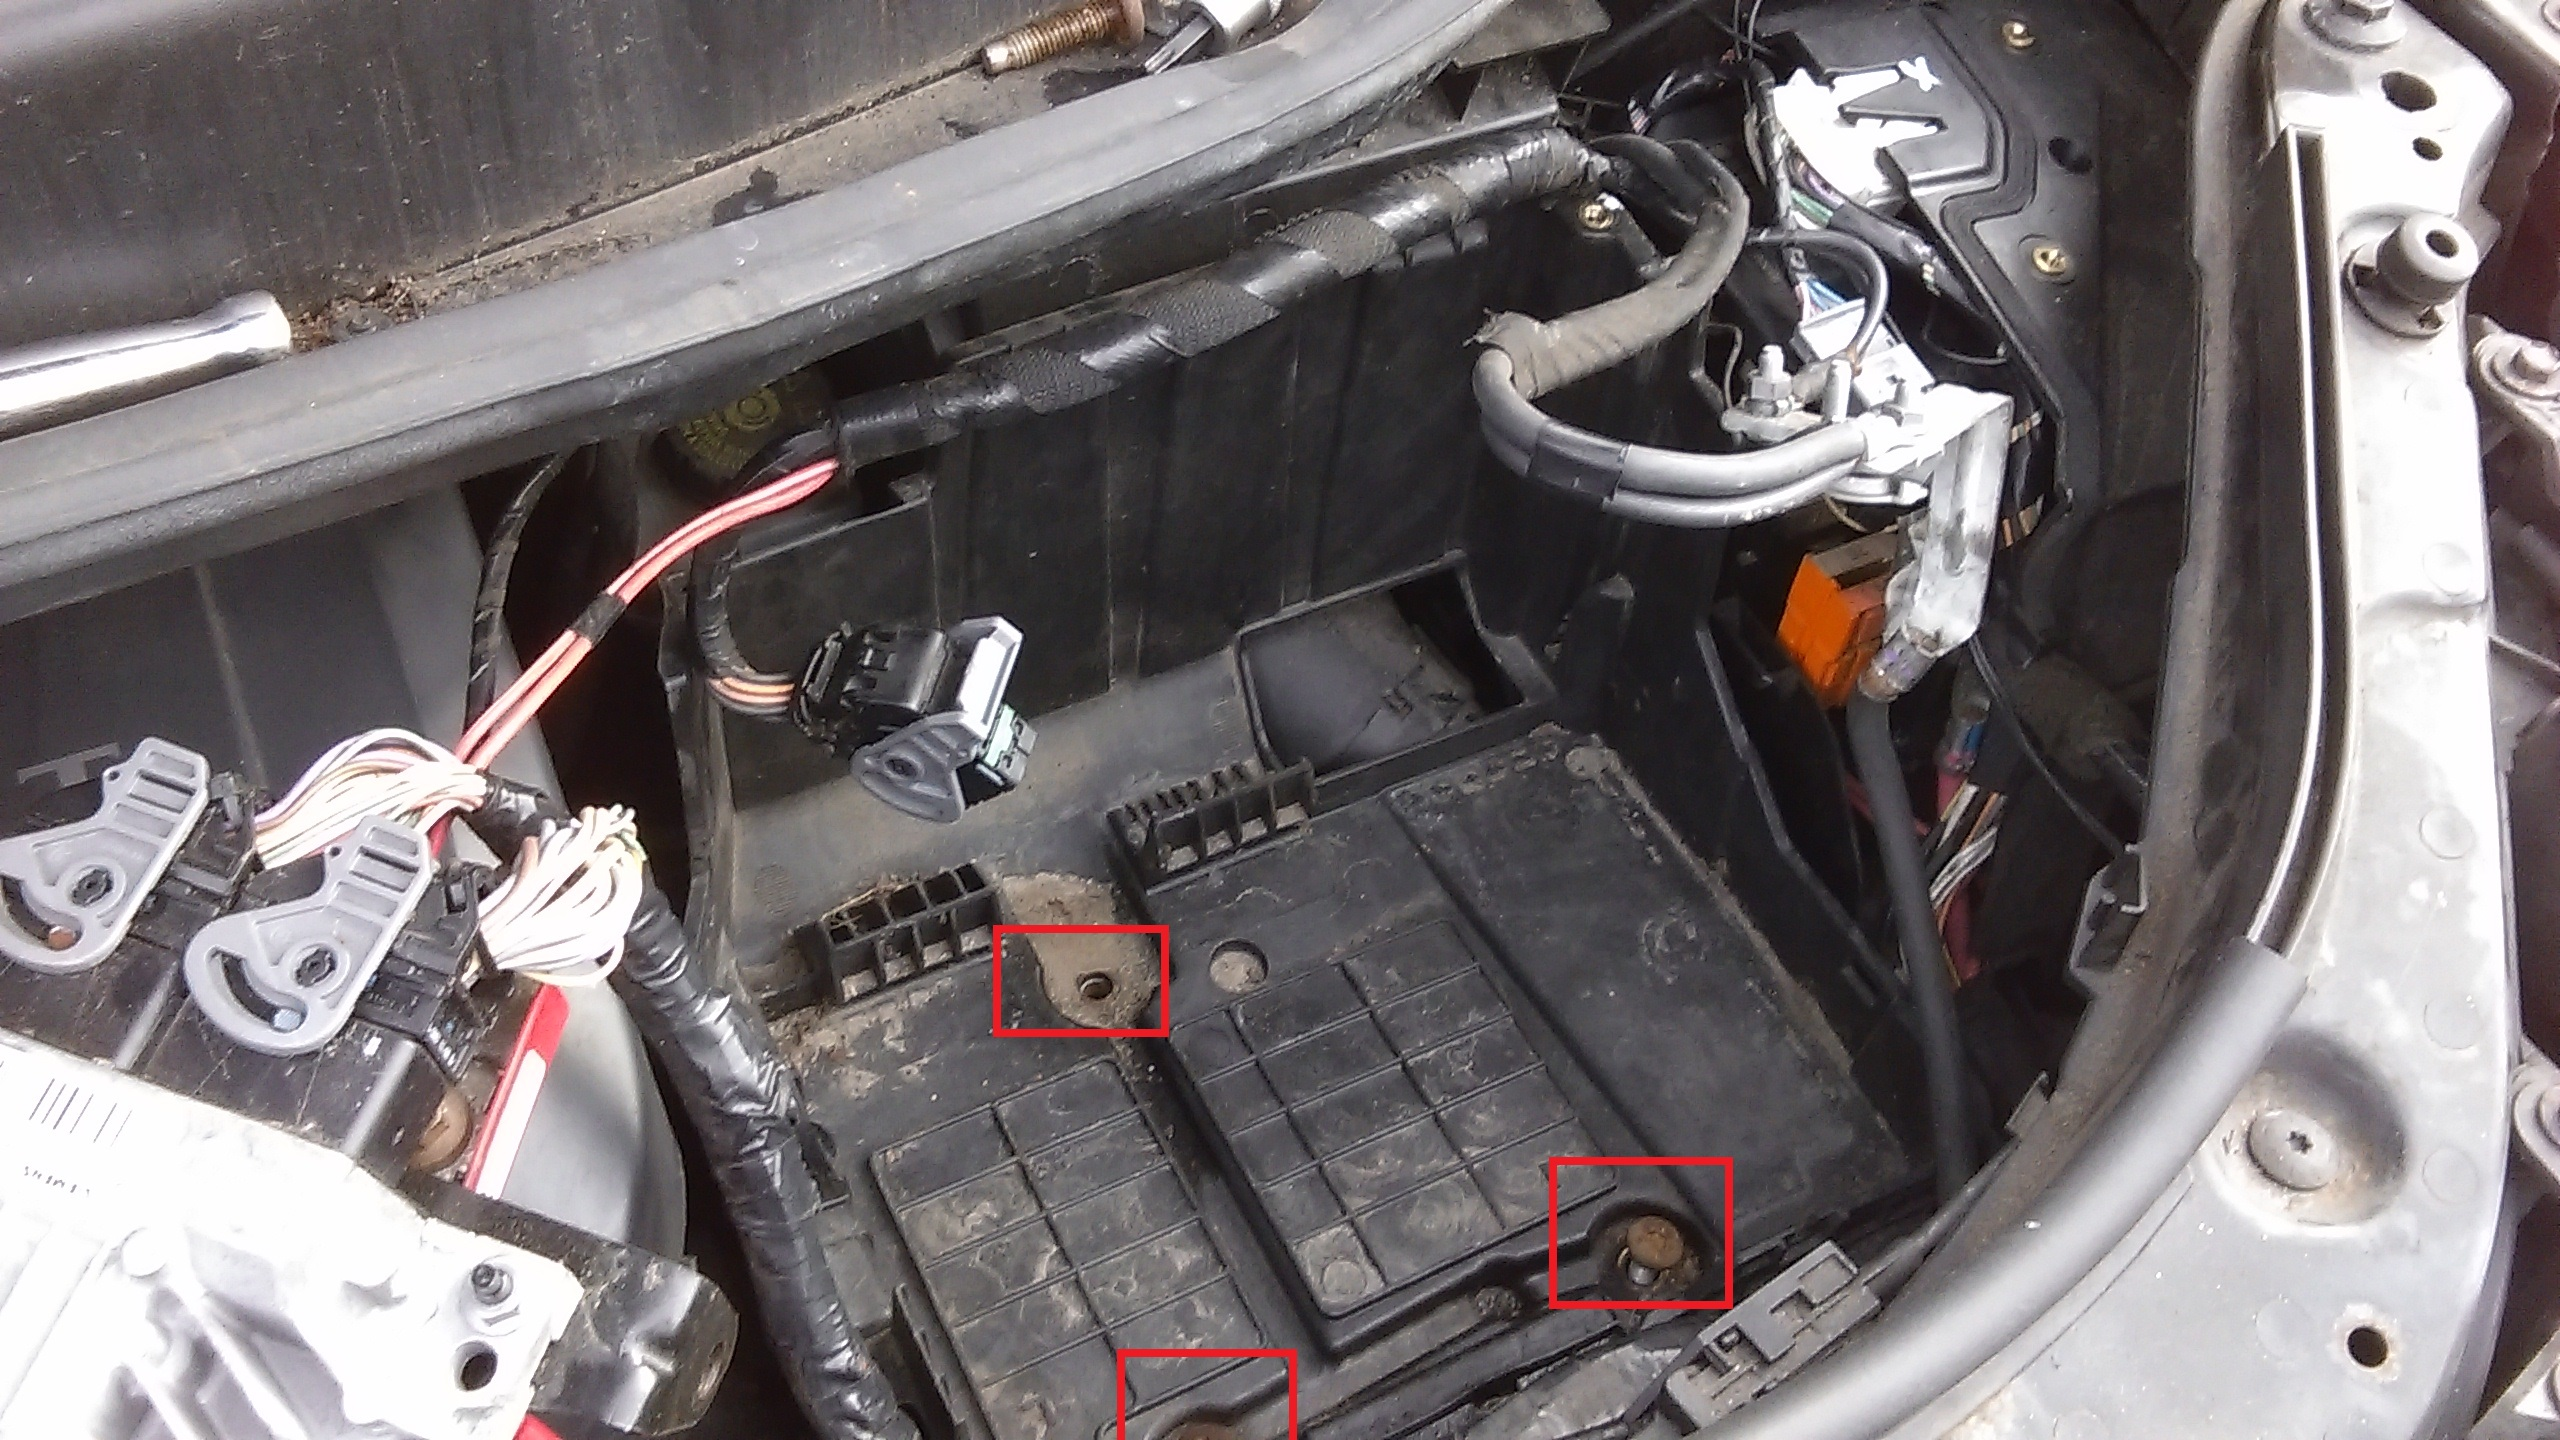 Renault Grand Scenic Engine Fusebox Access Javalinss Blog Sold Hot Water Fuse Box The Will Now Carefully Pull Out Into Battery Tray Space Unclip Connectors On Top Youll Need To Undo Bolt Holding Three Live Feed